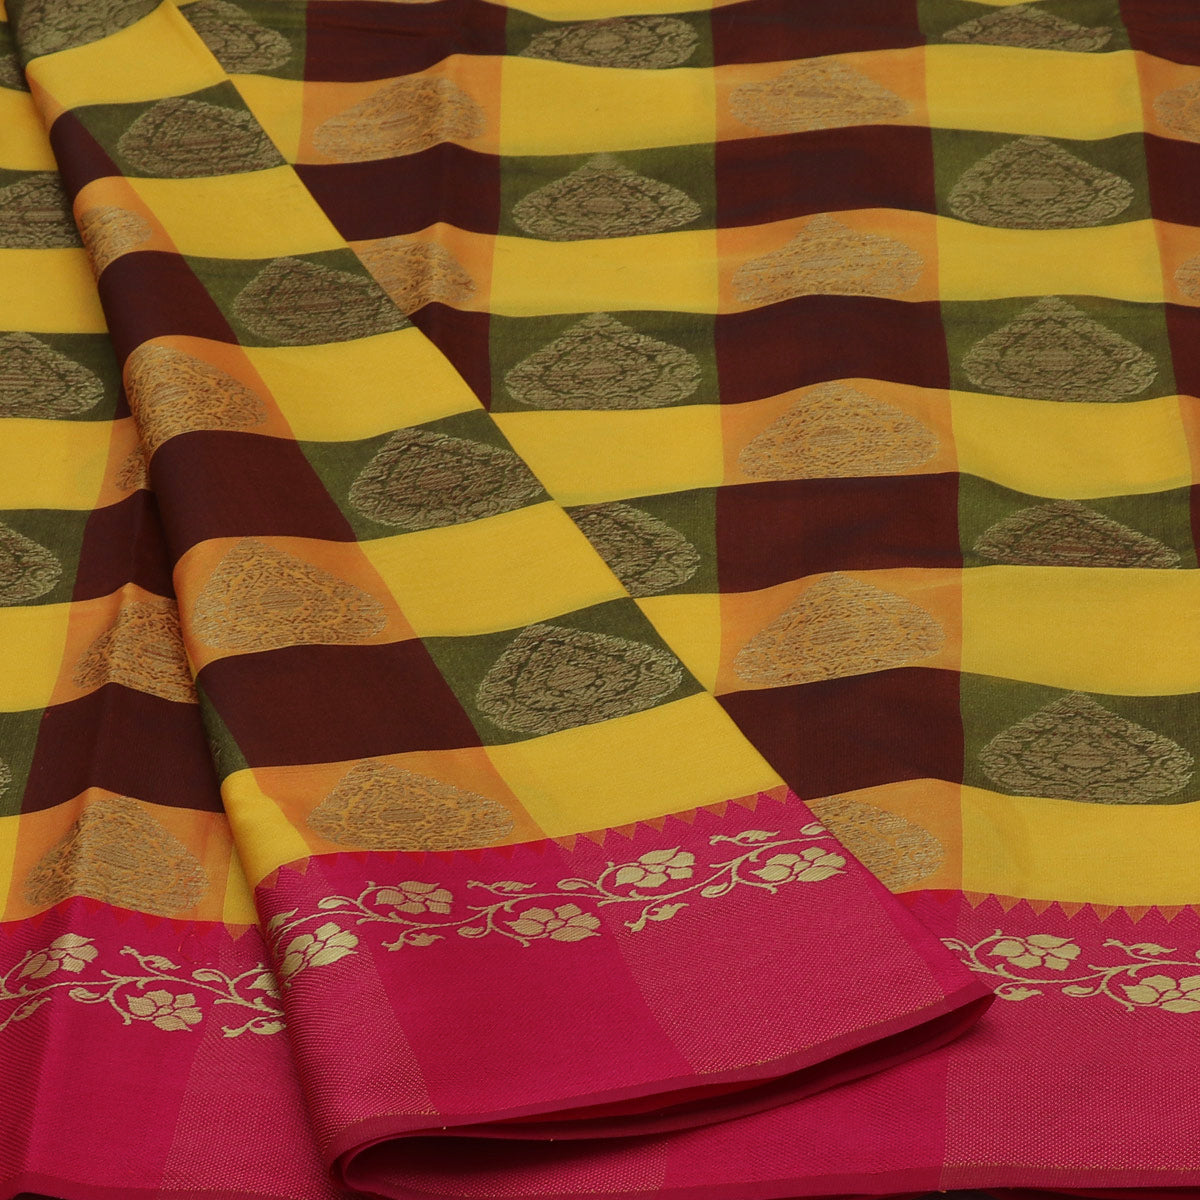 Banarasi Kora Muslin Saree Yellow and Orange Checked with Pink Floral border